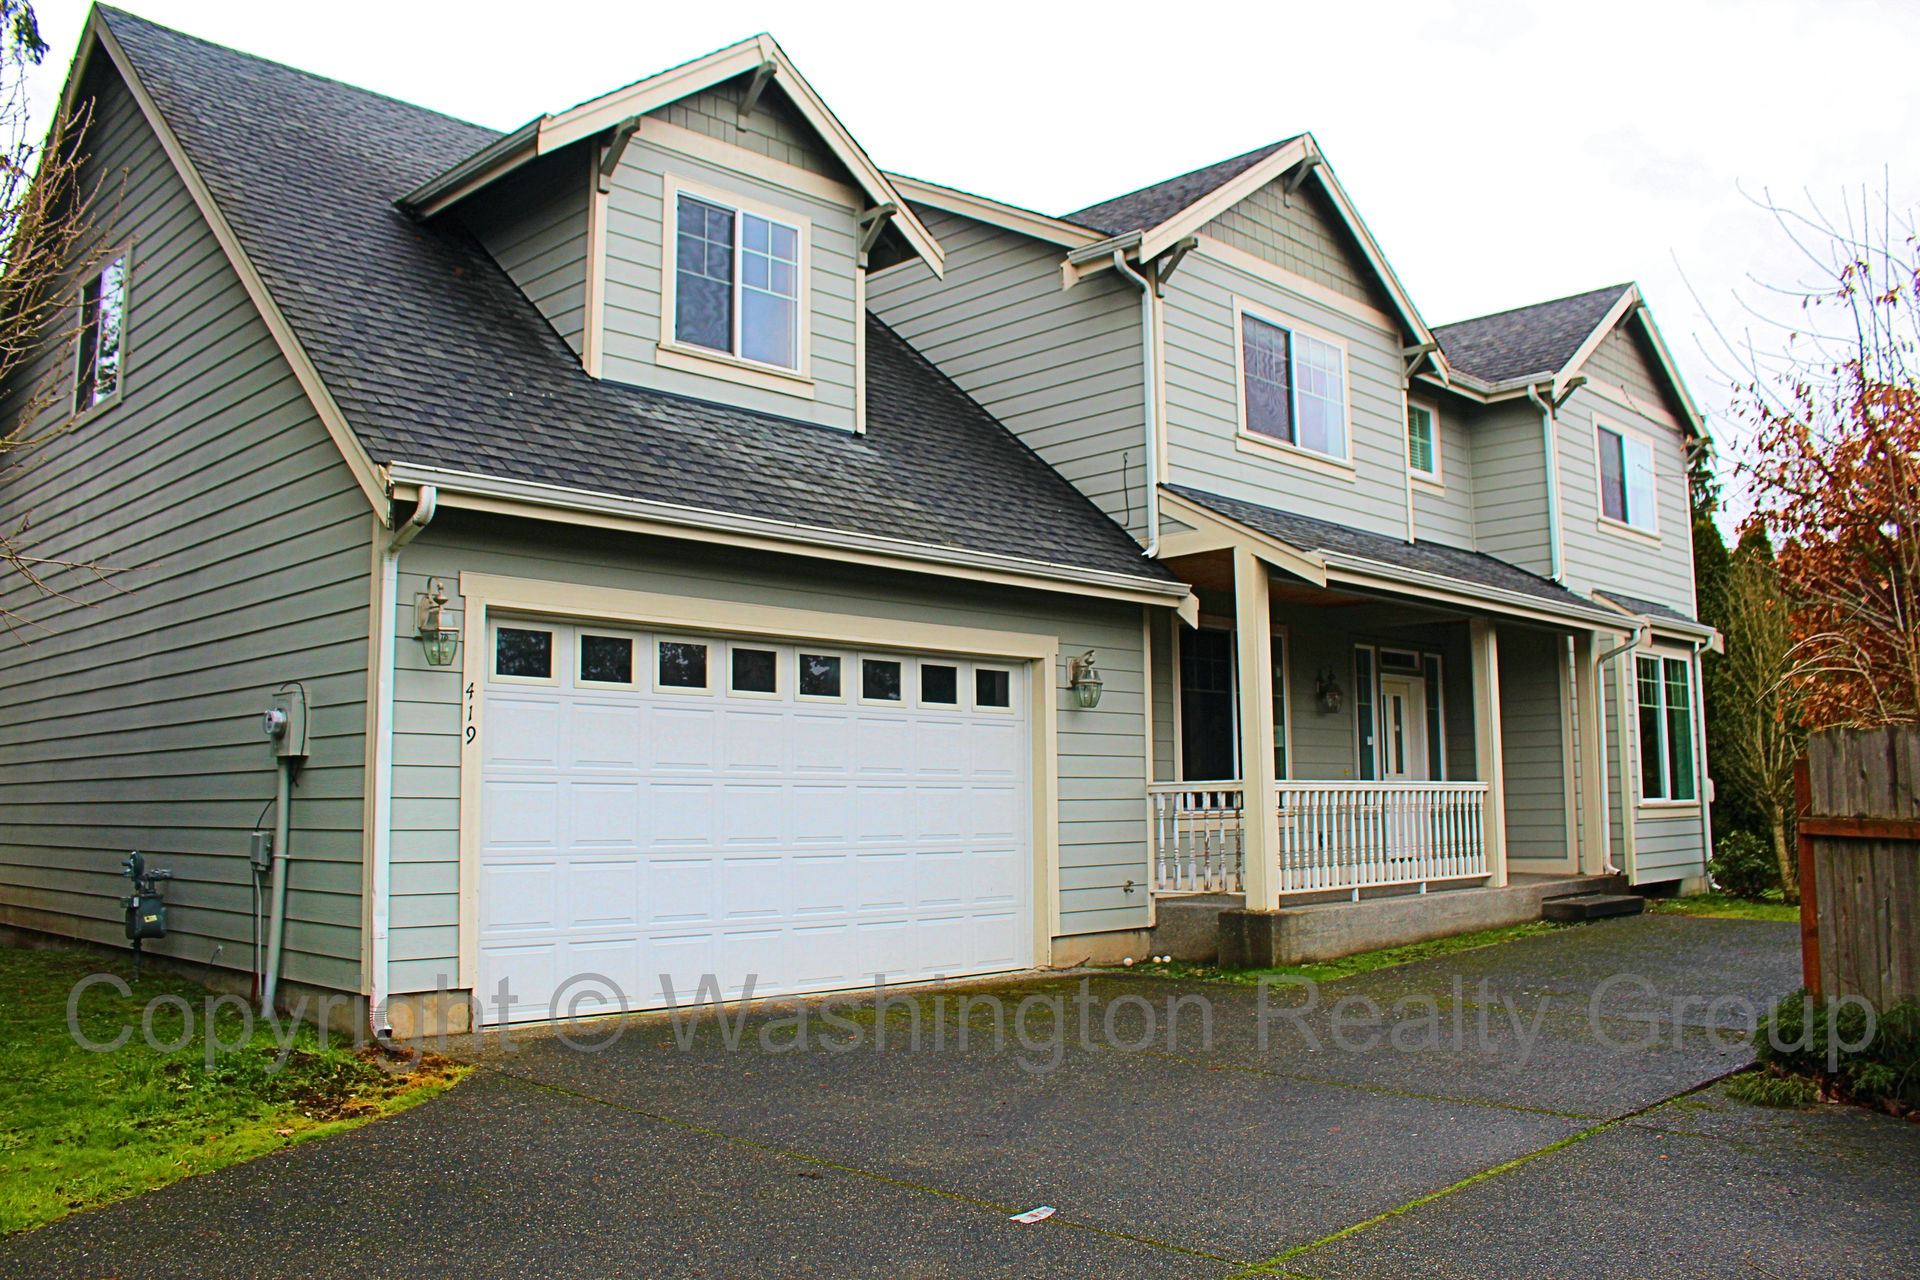 Front yard of Home for sale in Puyallup WA